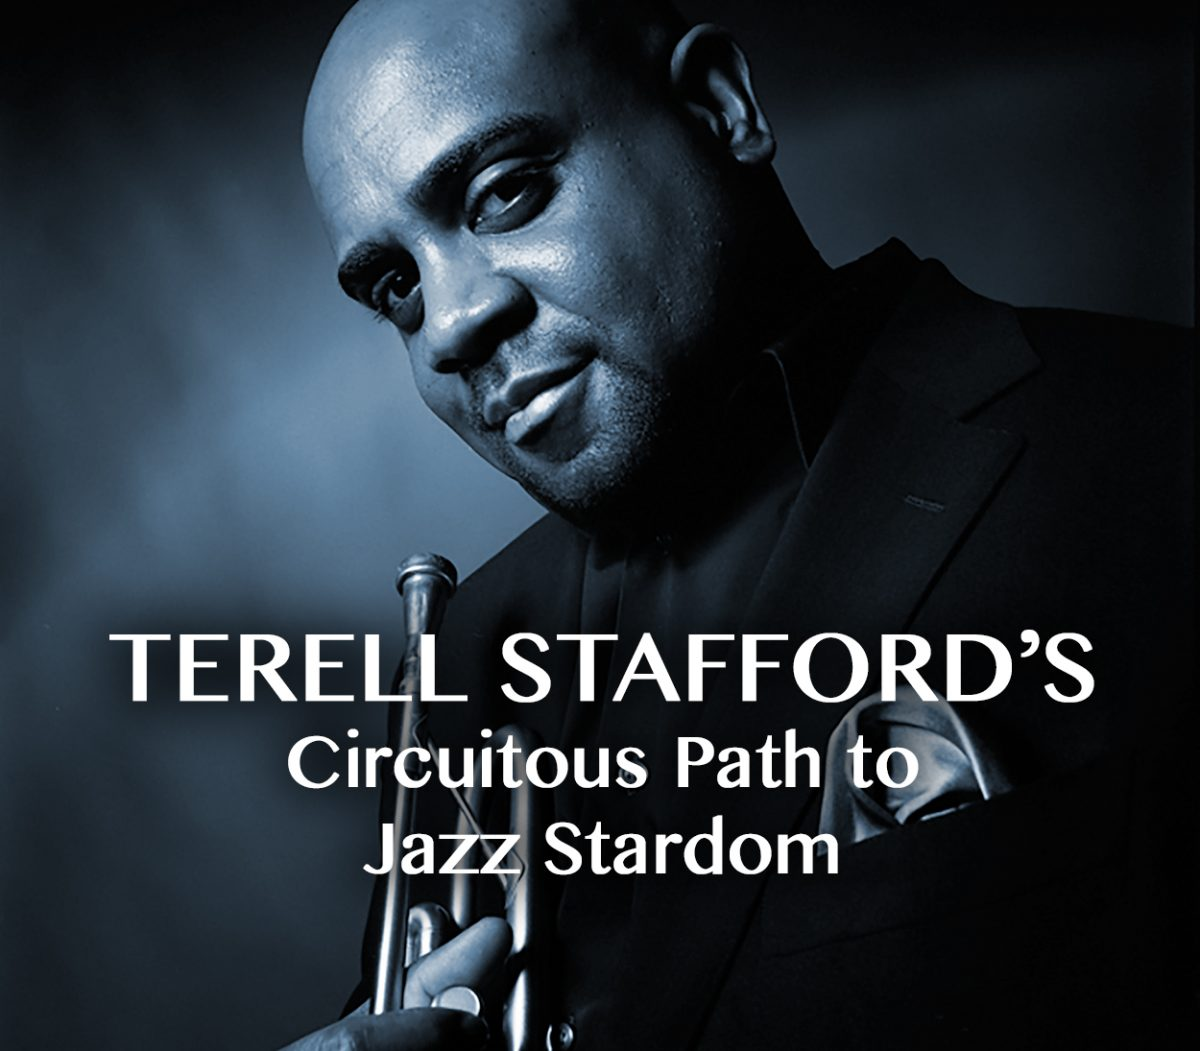 Terell Stafford's Circuitous Path to Jazz Stardom